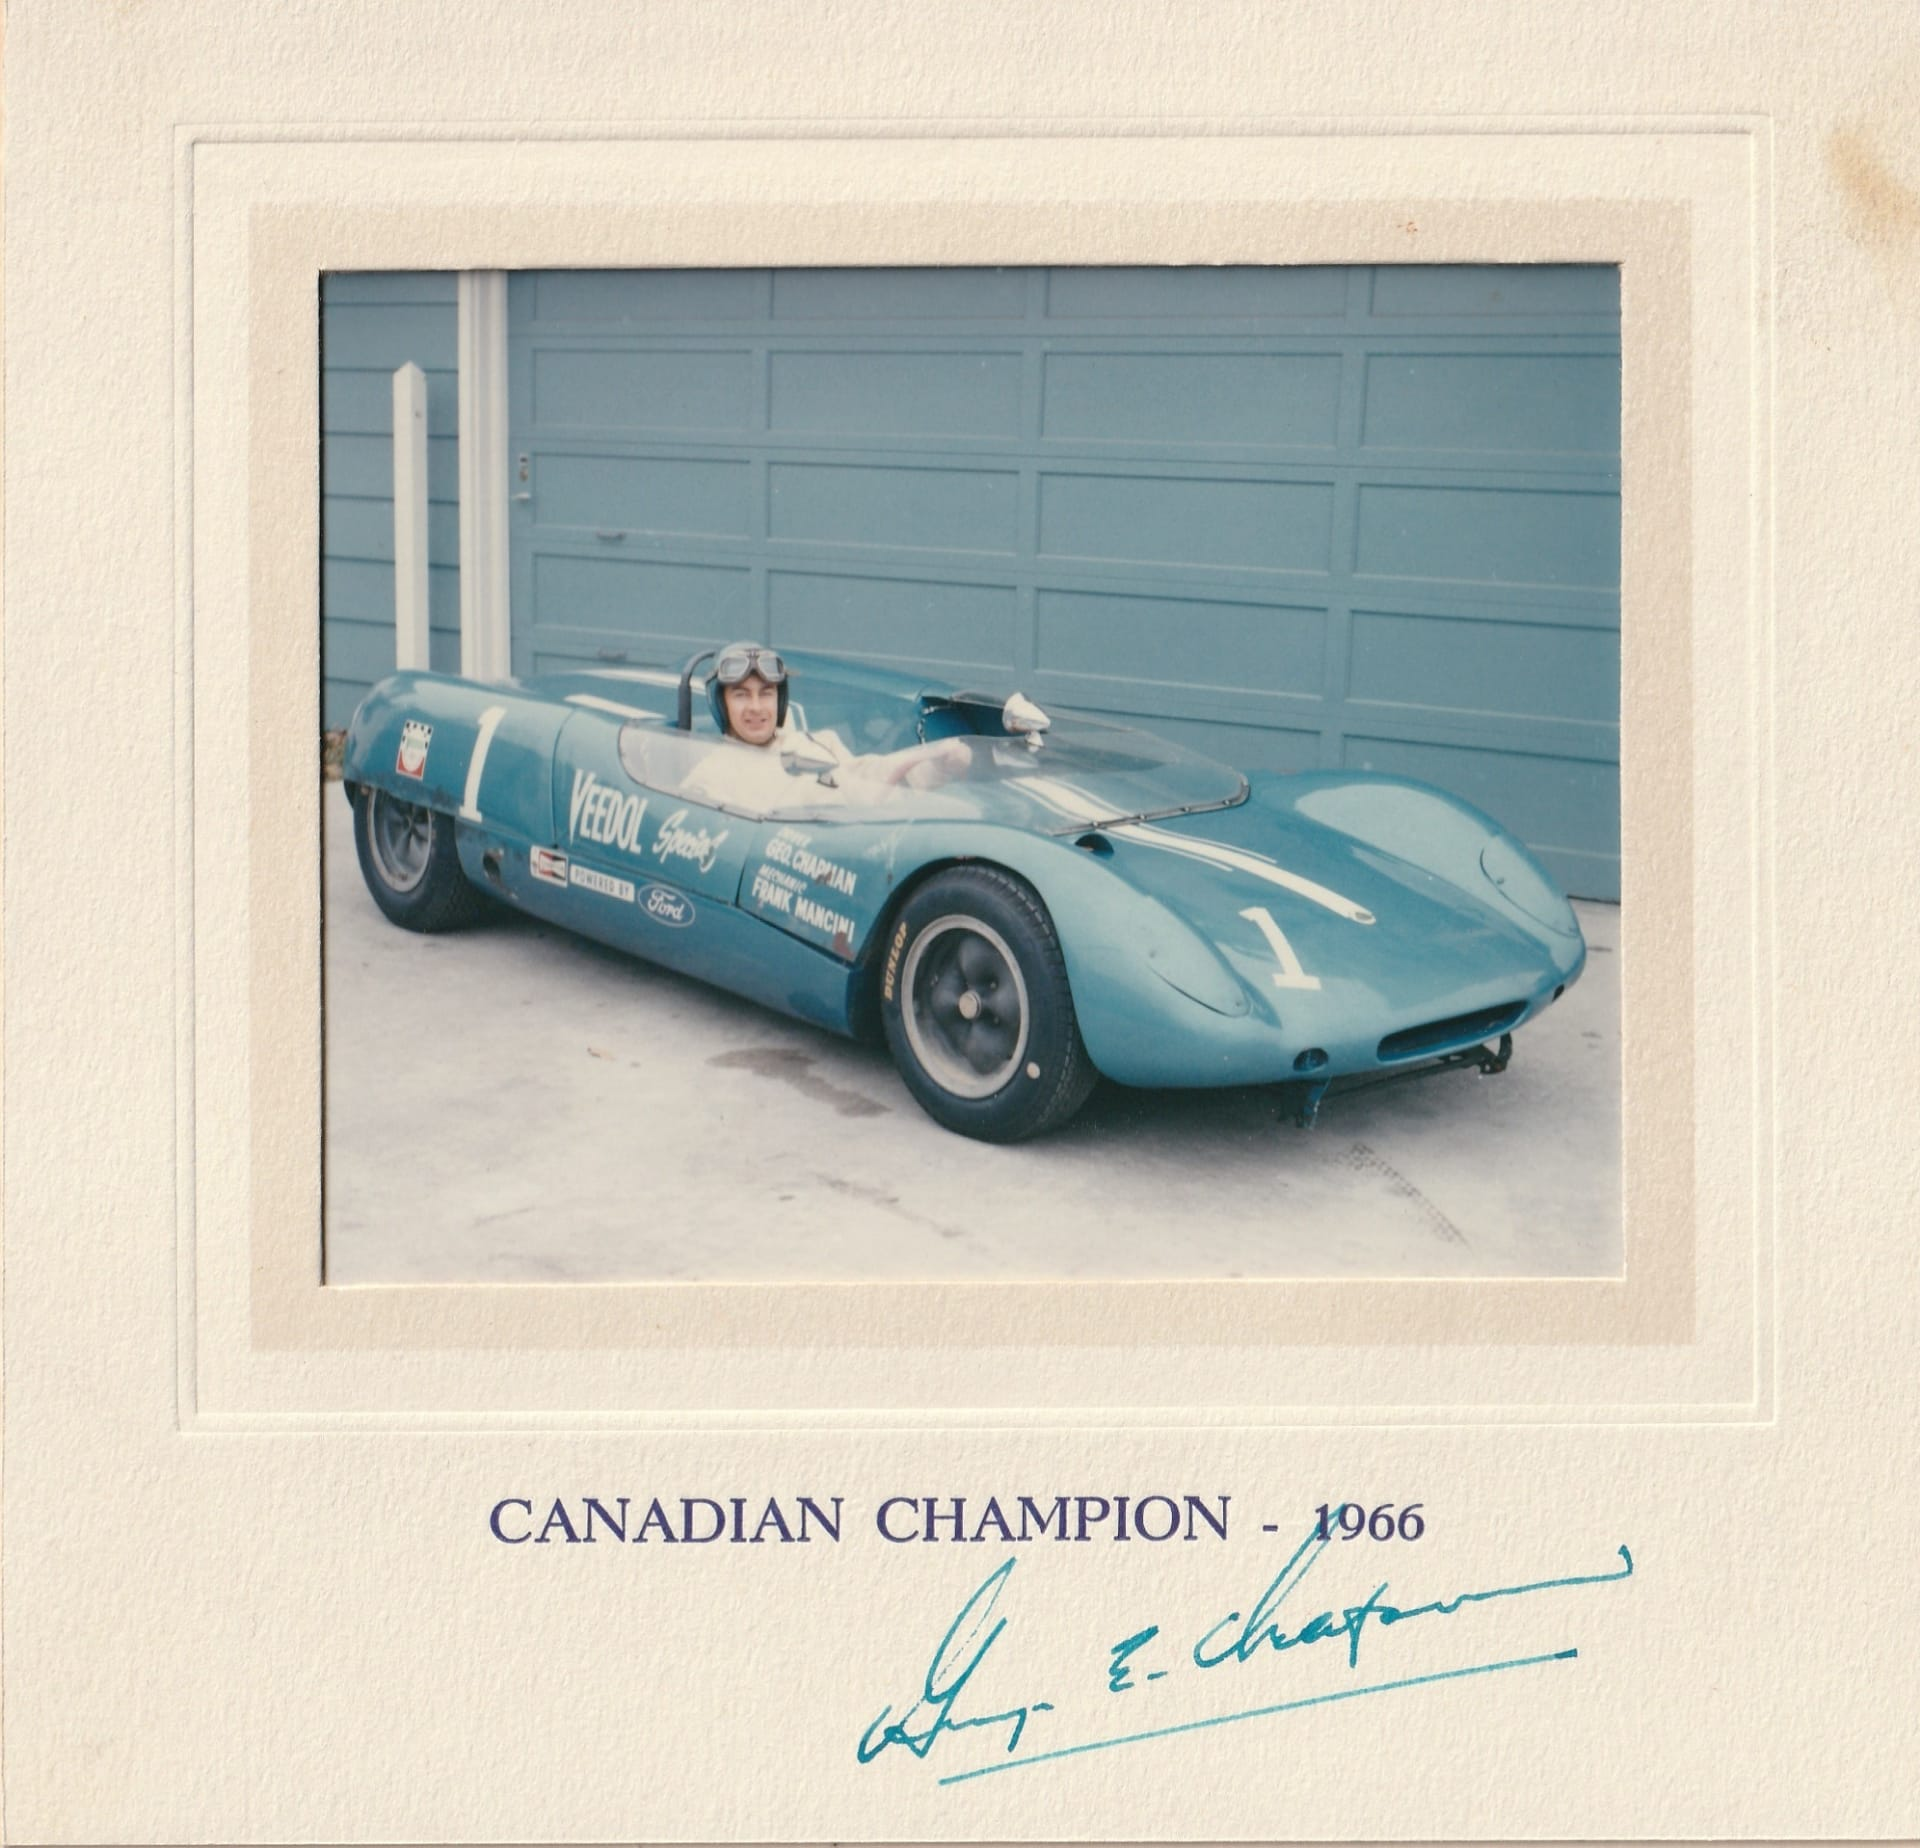 Canadian-Champion-1966-w1920.jpg